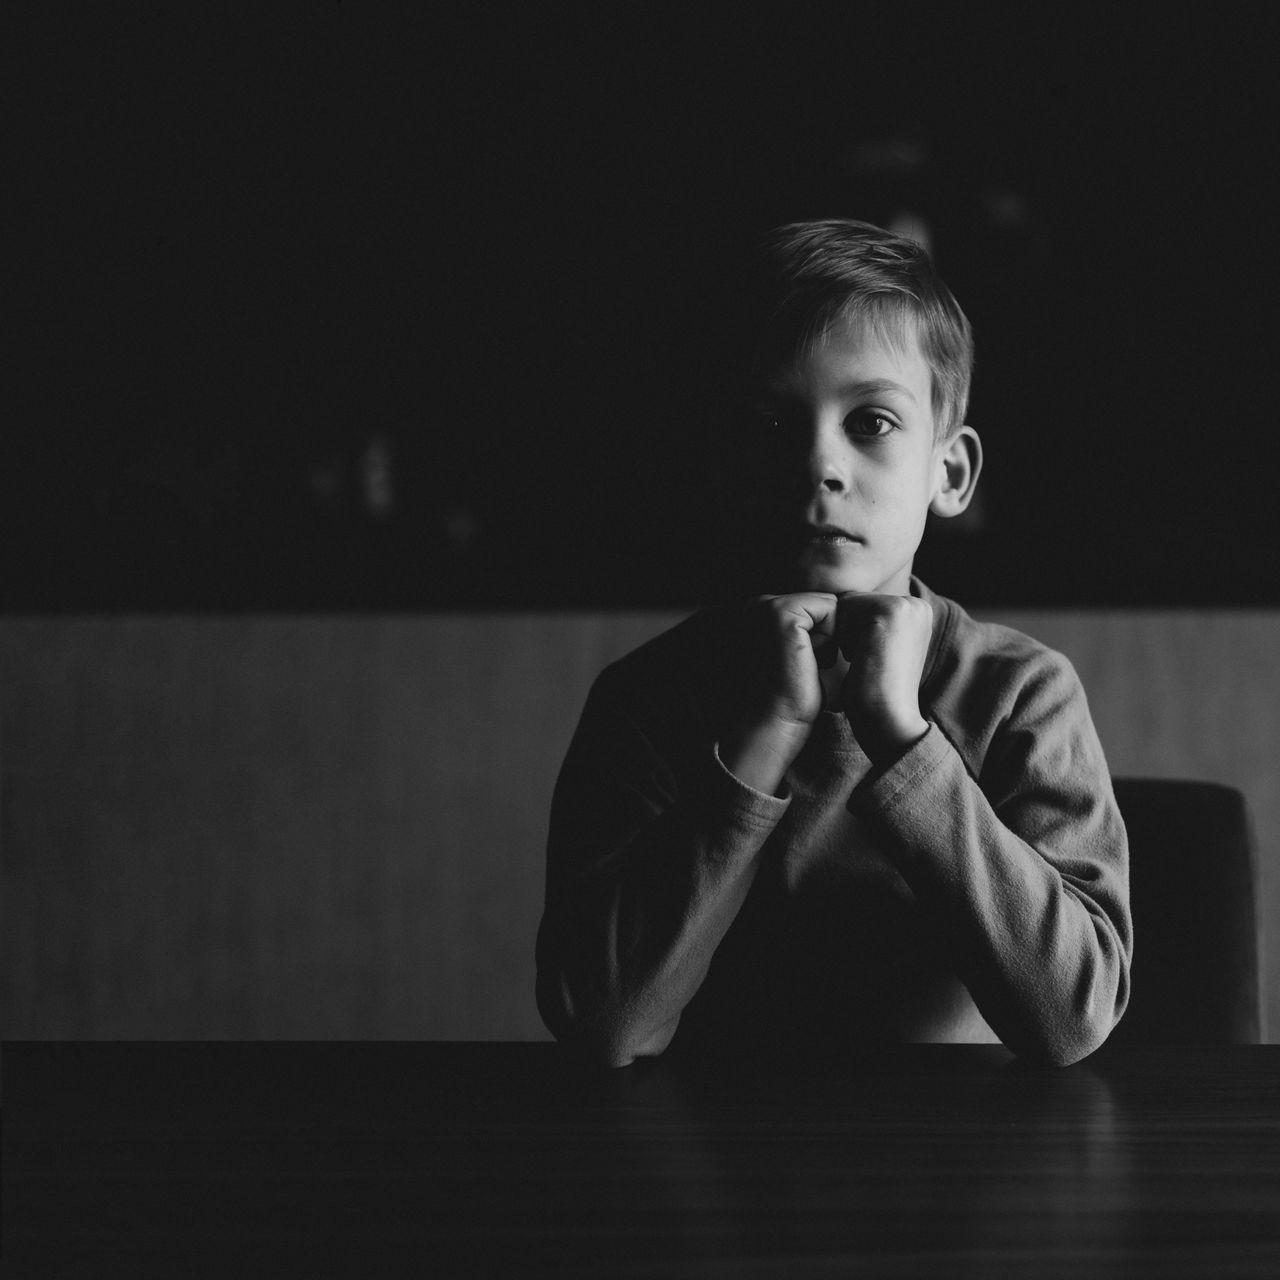 Boys BYOPaper! Childhood Close-up Day Elementary Age Front View Home Interior Indoors  Lifestyles Looking At Camera One Person People Portrait Real People Sitting The Portraitist - 2017 EyeEm Awards Young Adult